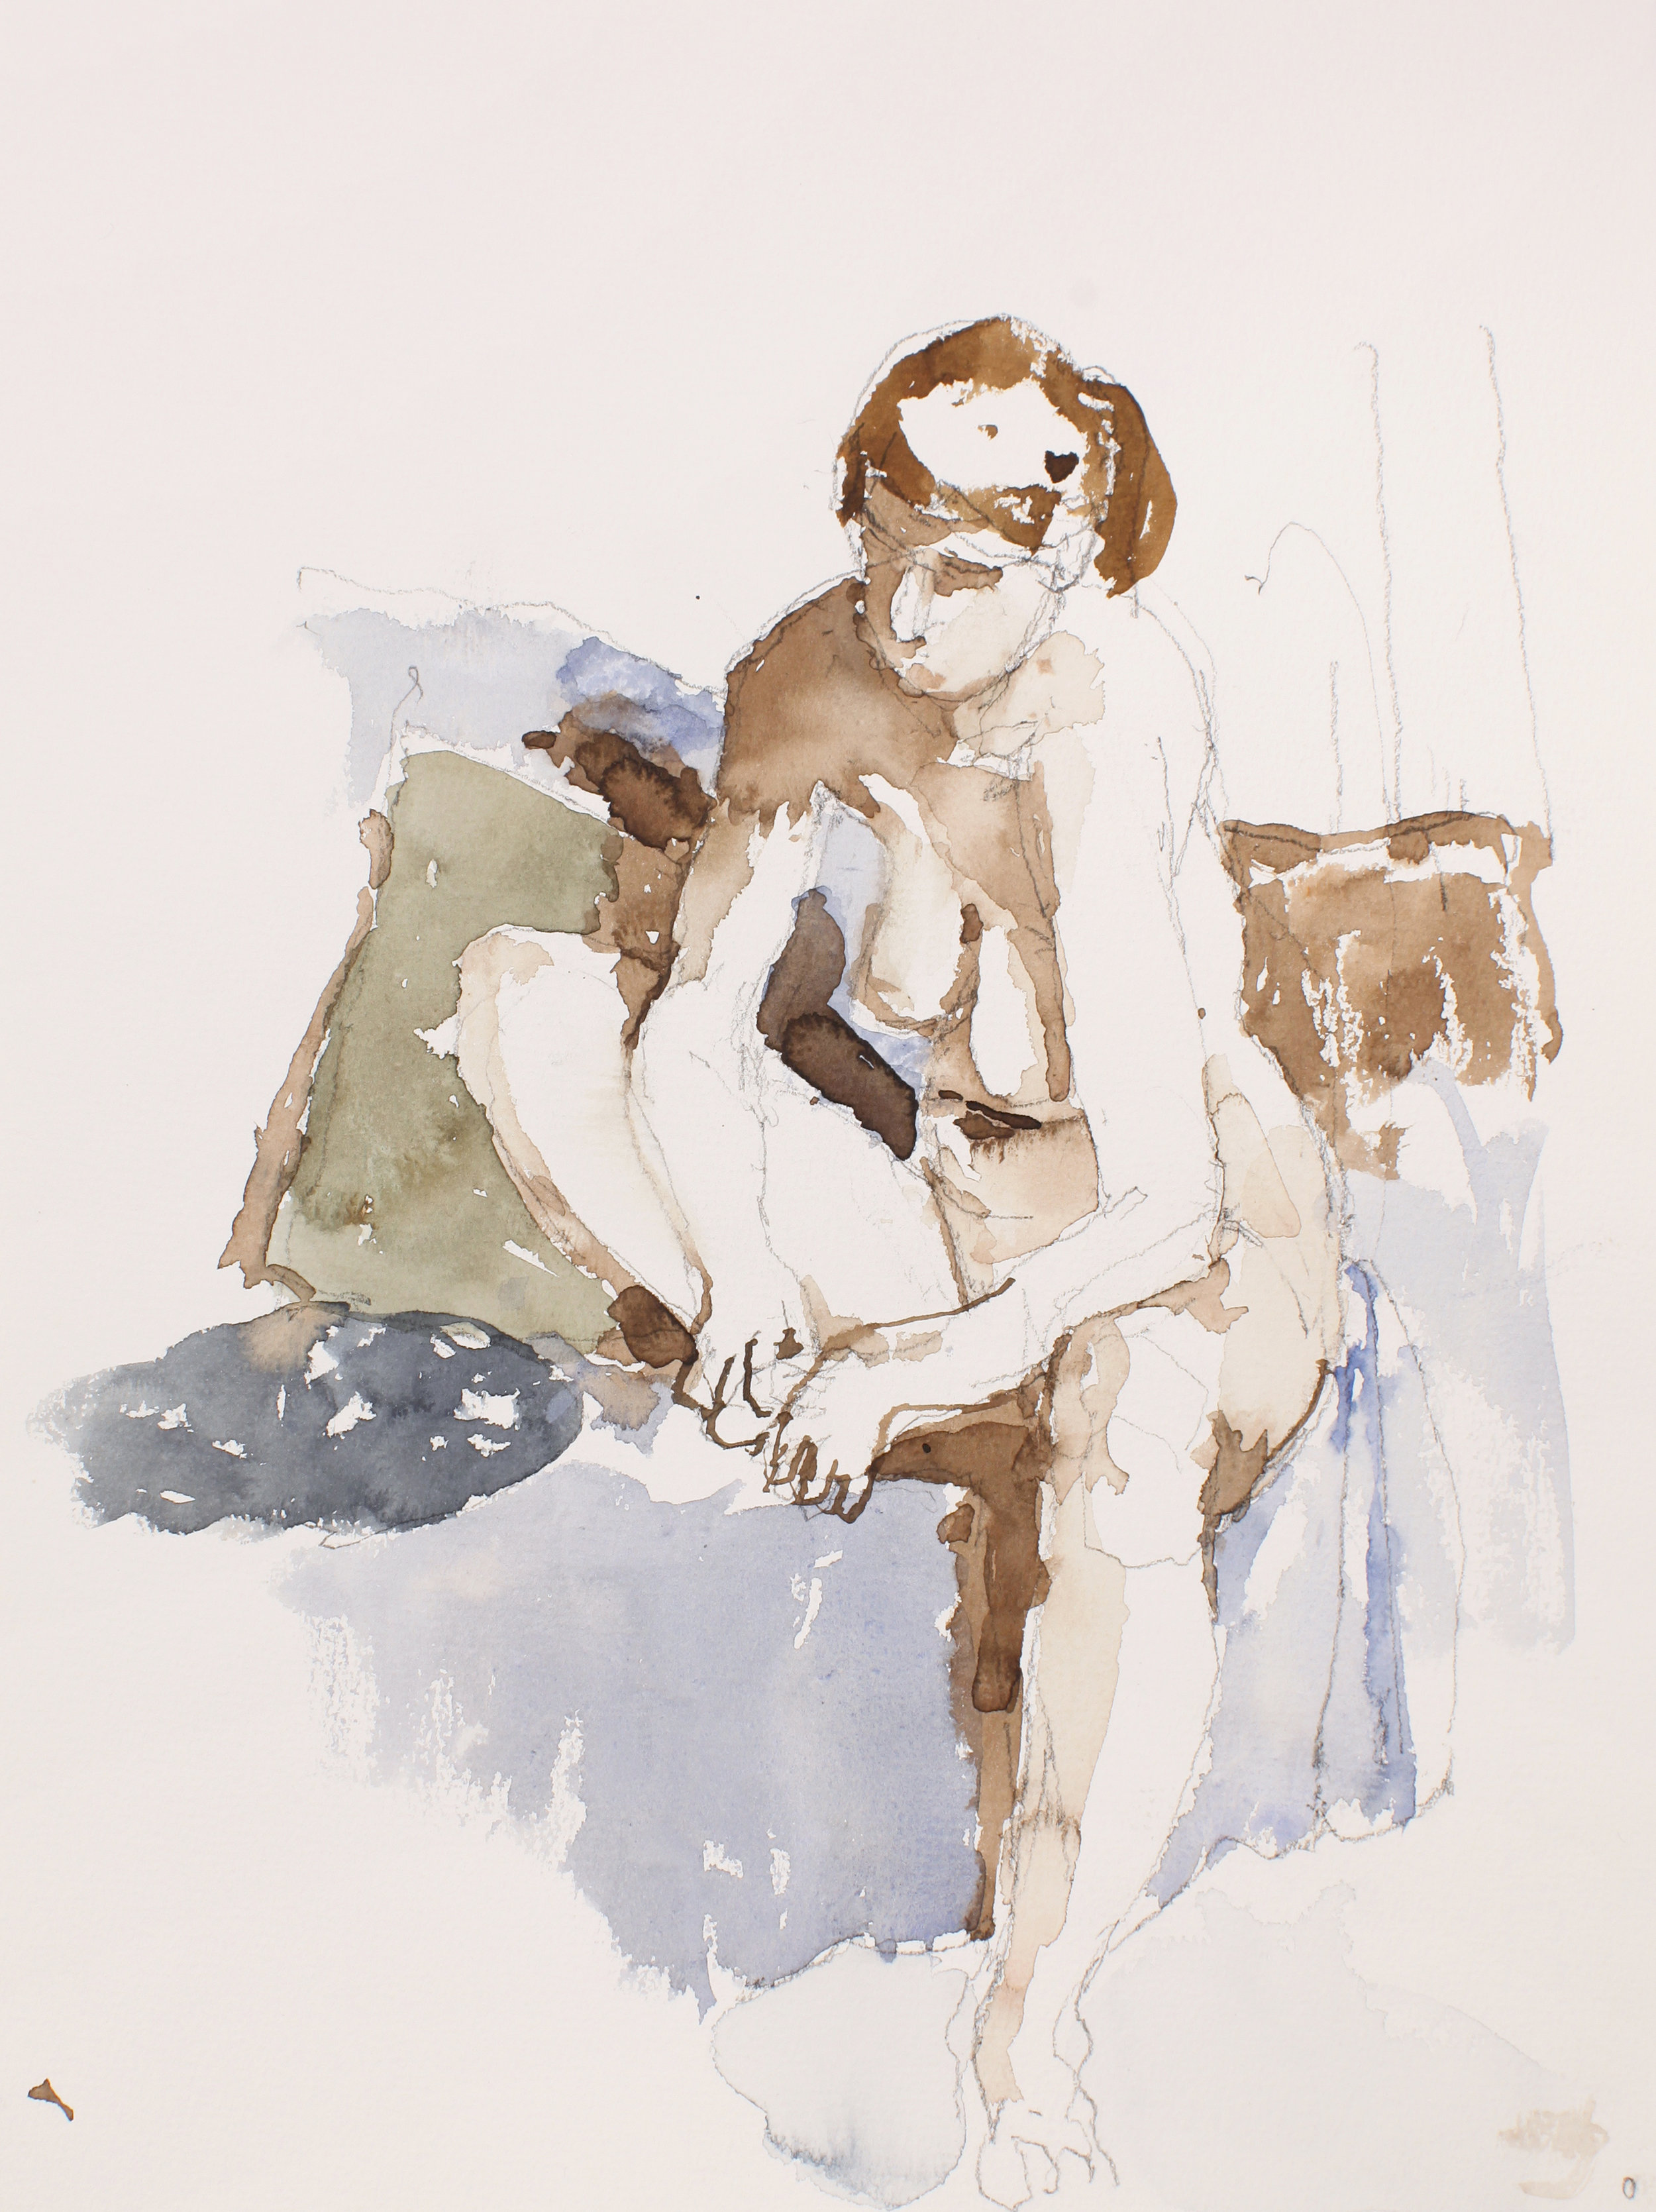 2006_Nude_Seated_on_Sofa_with_Pillows_Holding_Foot_watercolour_and_pencil_on_paper_15x11in_WPF469.jpg